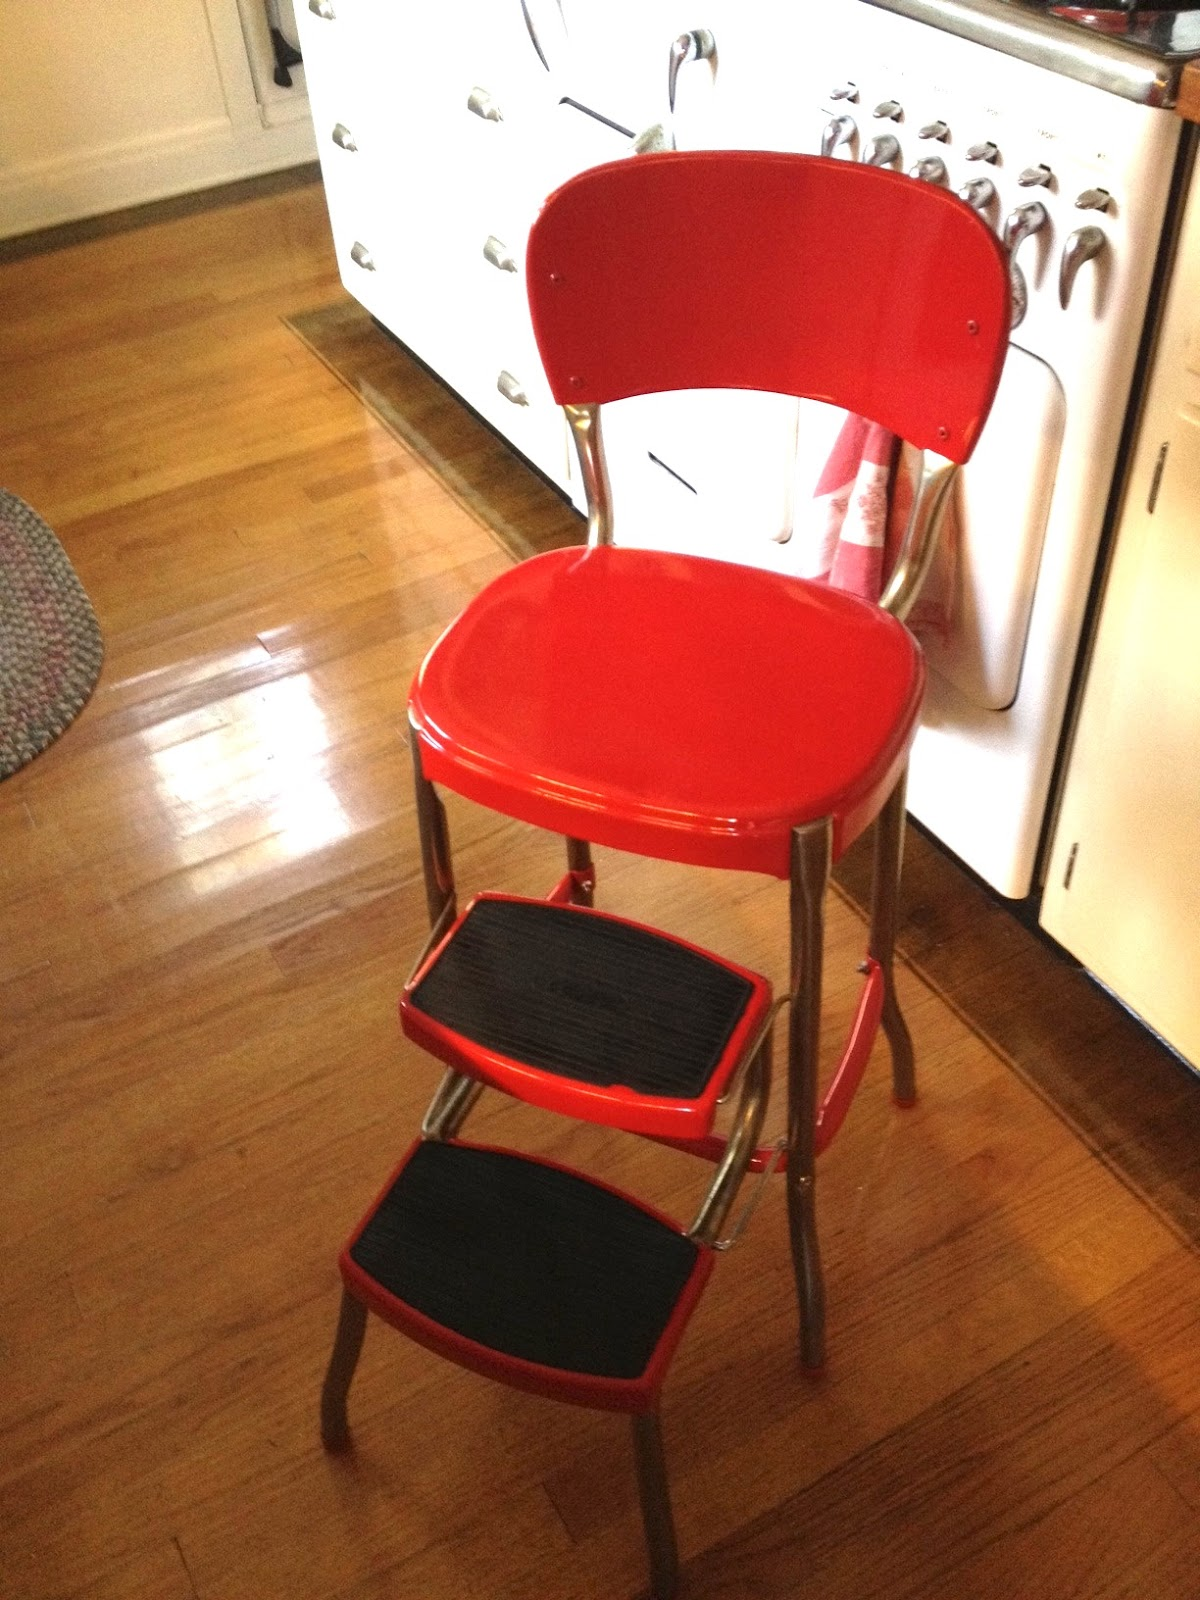 kitchen step stool with seat cabinets san jose tales from a sears house cosco makeover